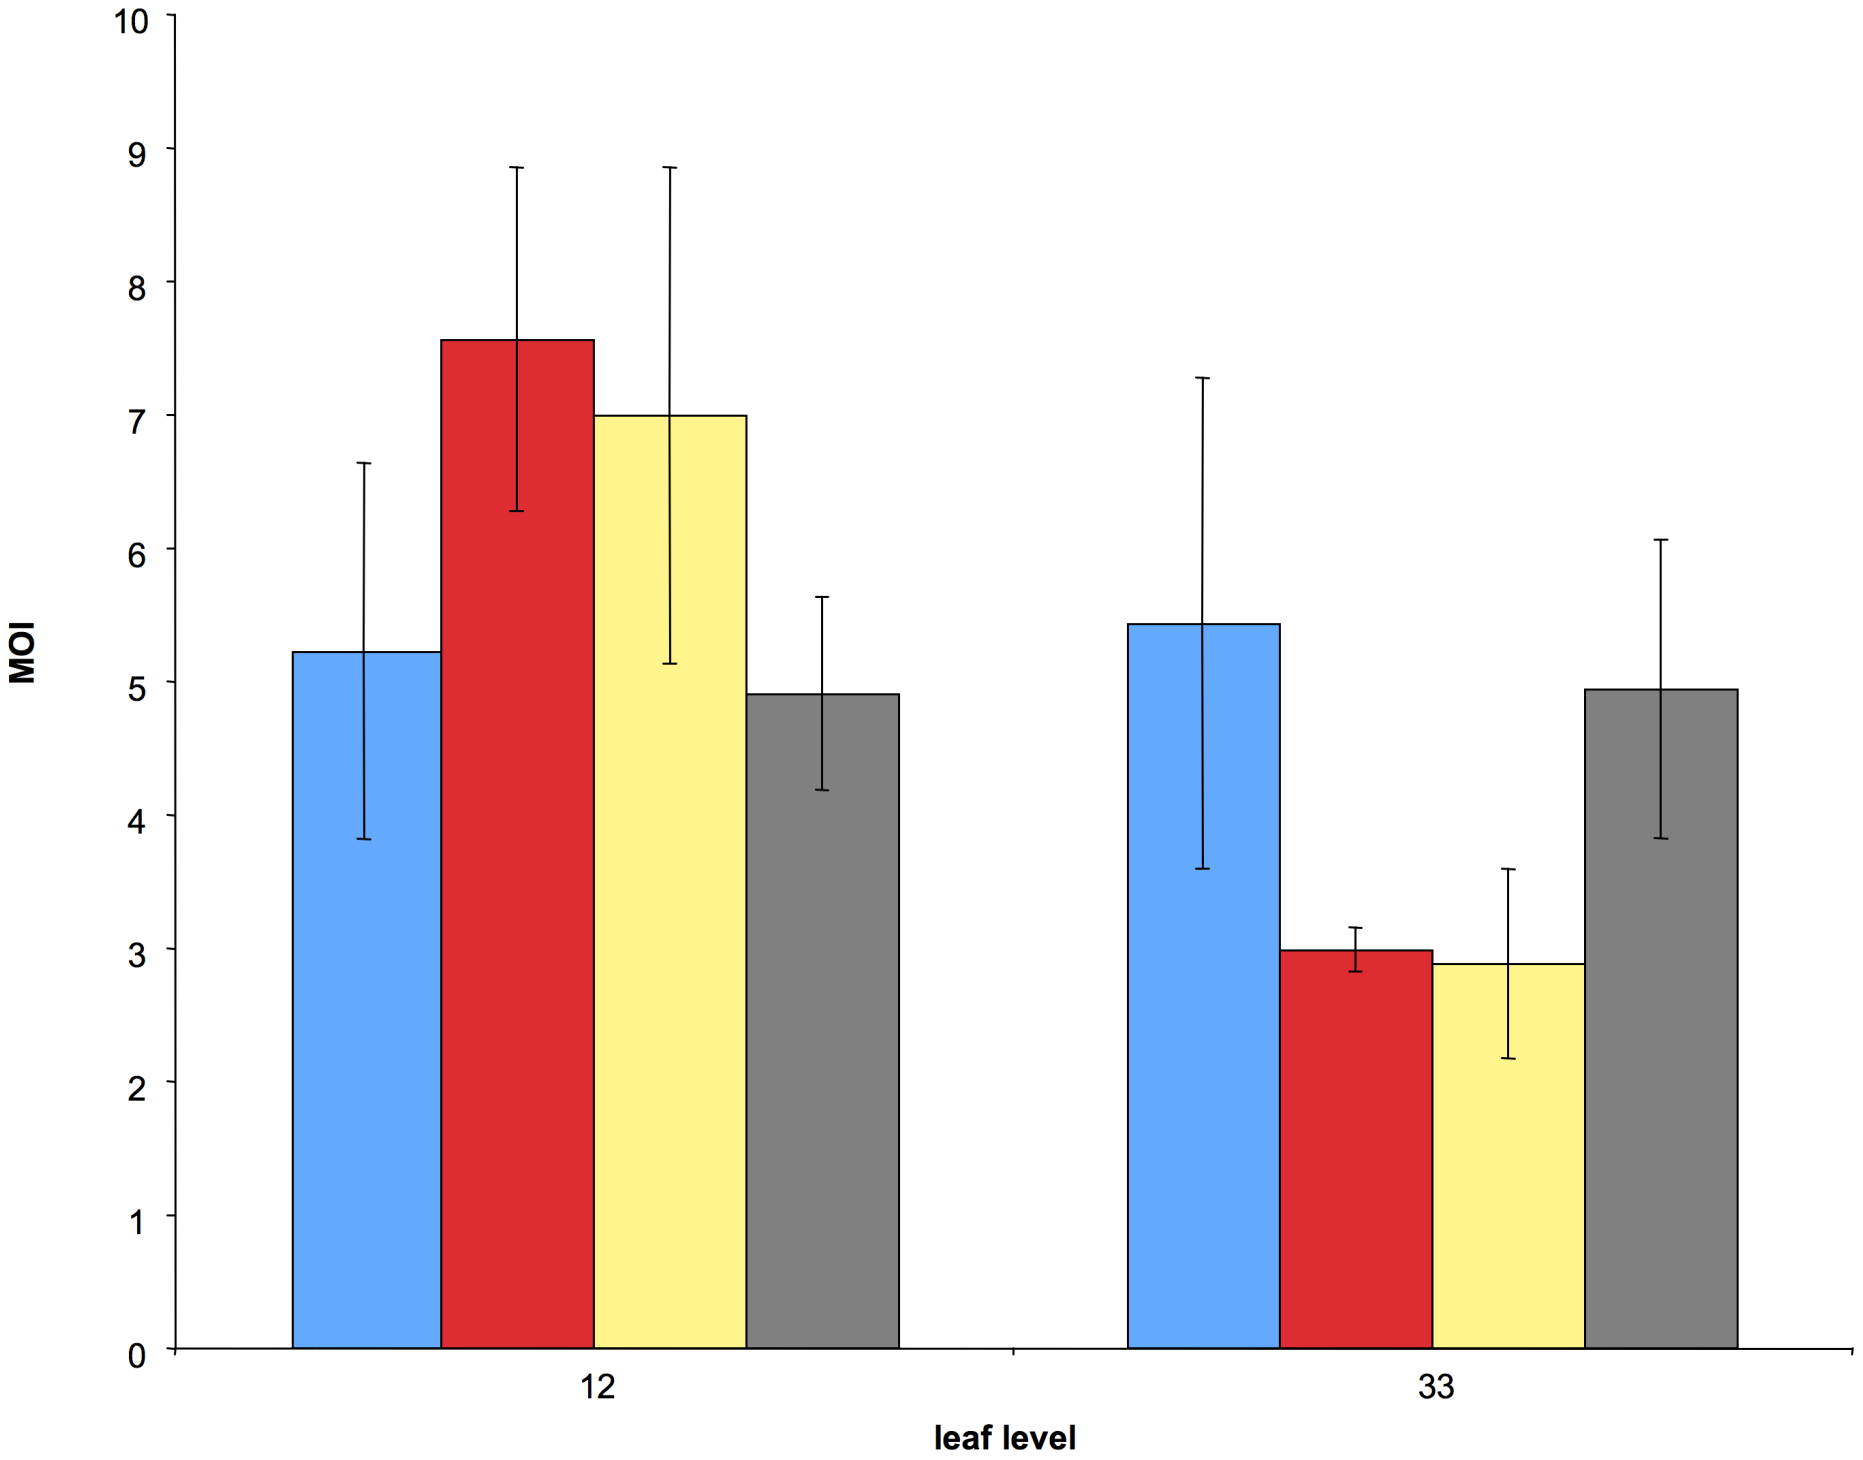 Comparison of the average cellular MOI in leaf levels 12 and 33 under four different treatments.